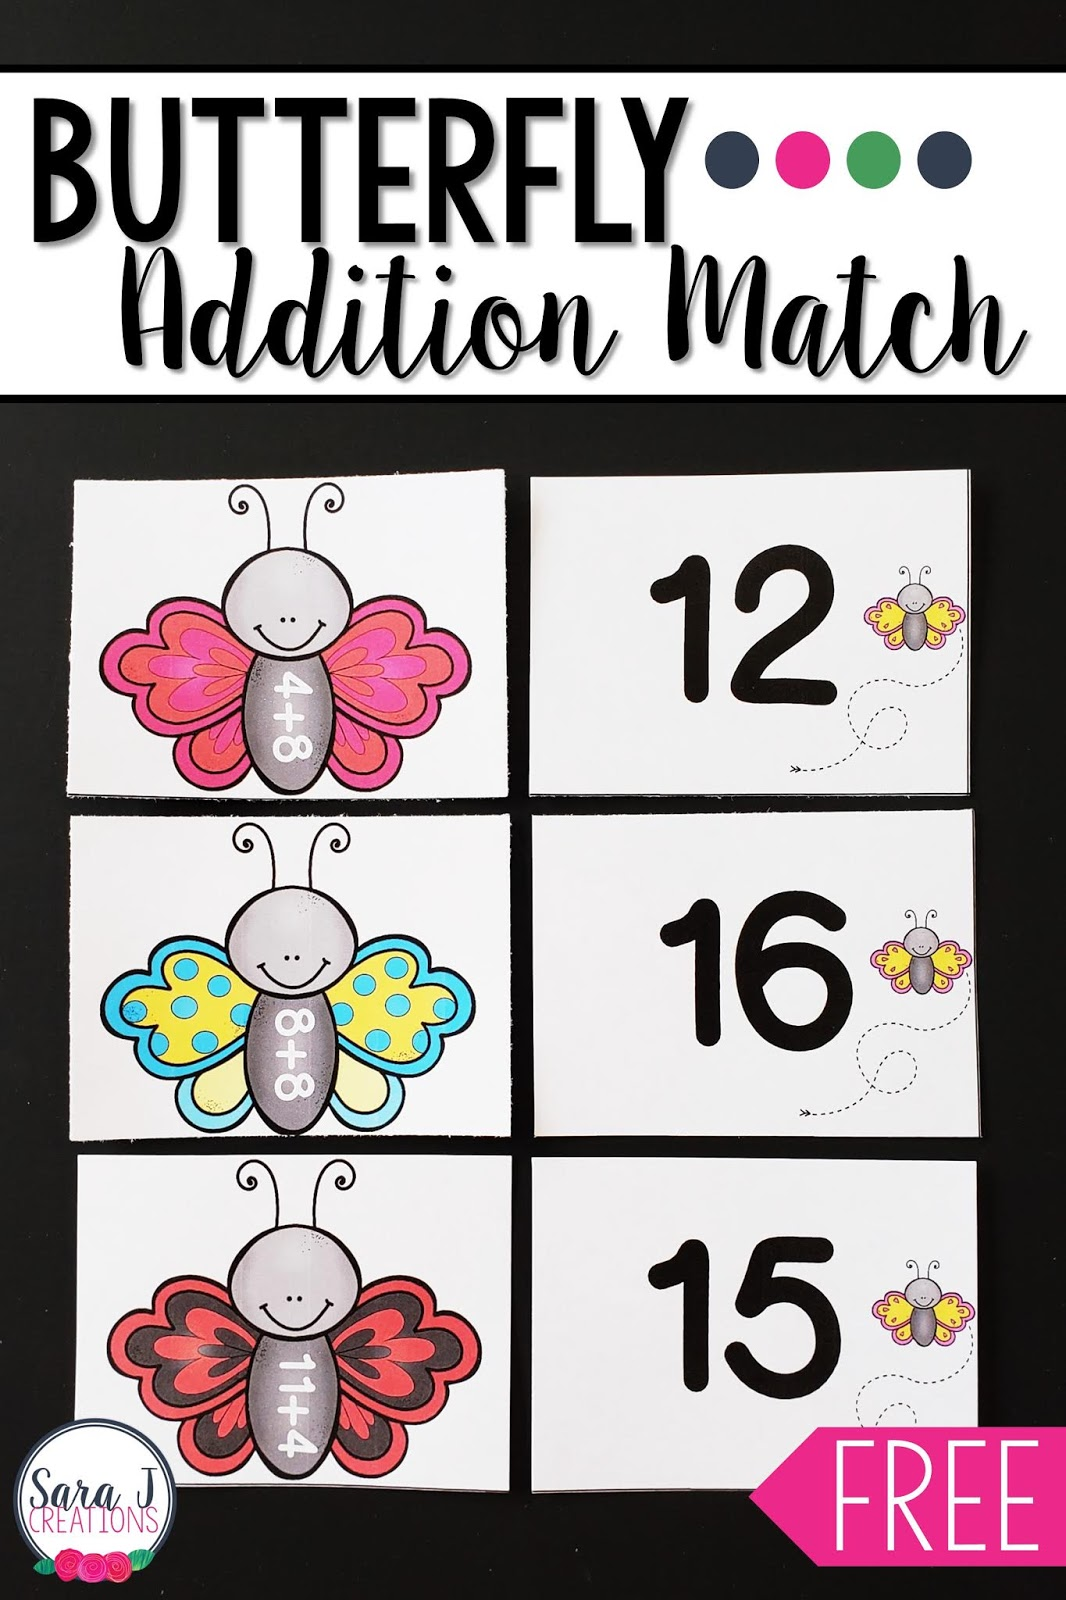 photograph about Math Fact Fluency Games Printable identified as Cost-free Butterfly Addition in just 20 Matching Video game Sara J